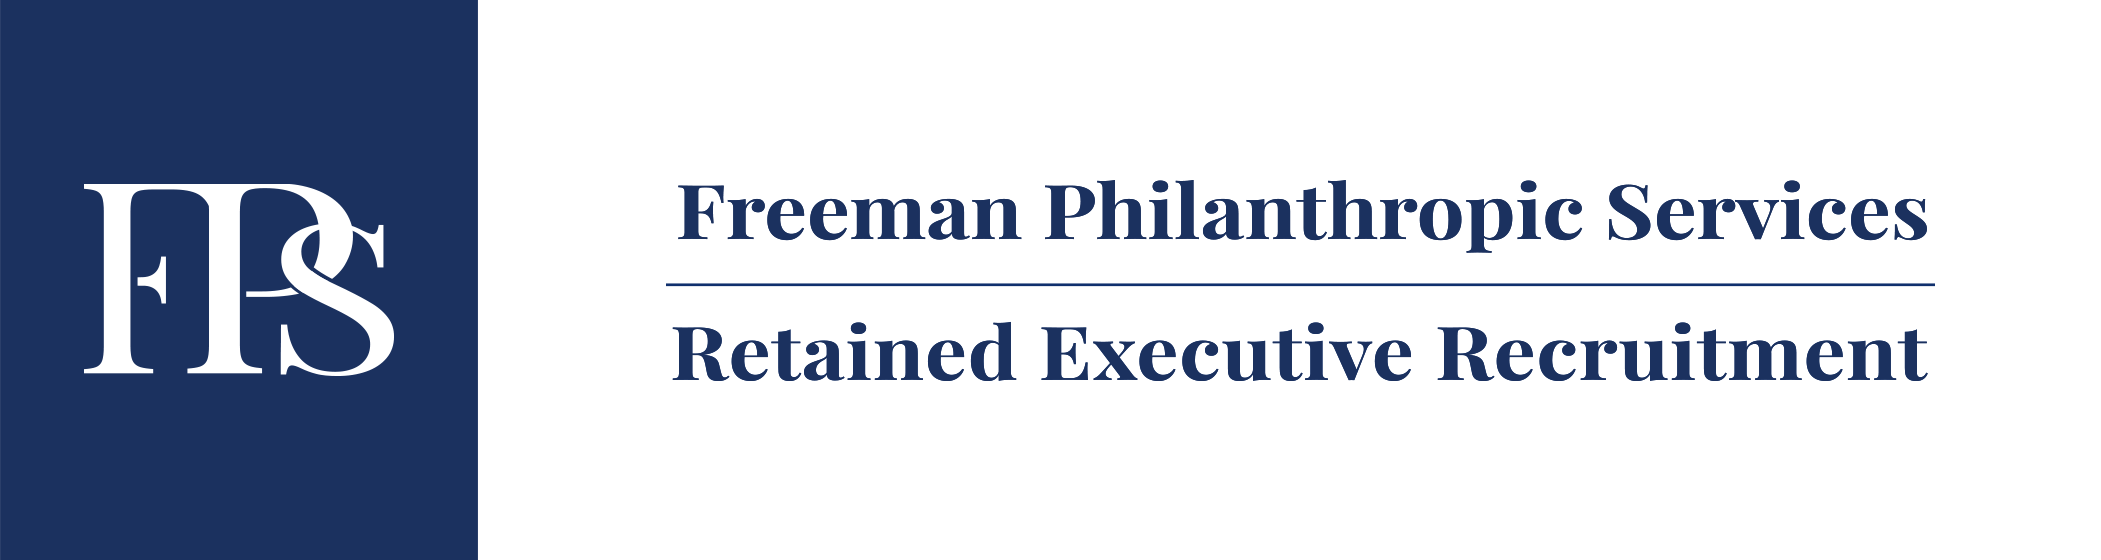 Freeman Philanthropic Services logo